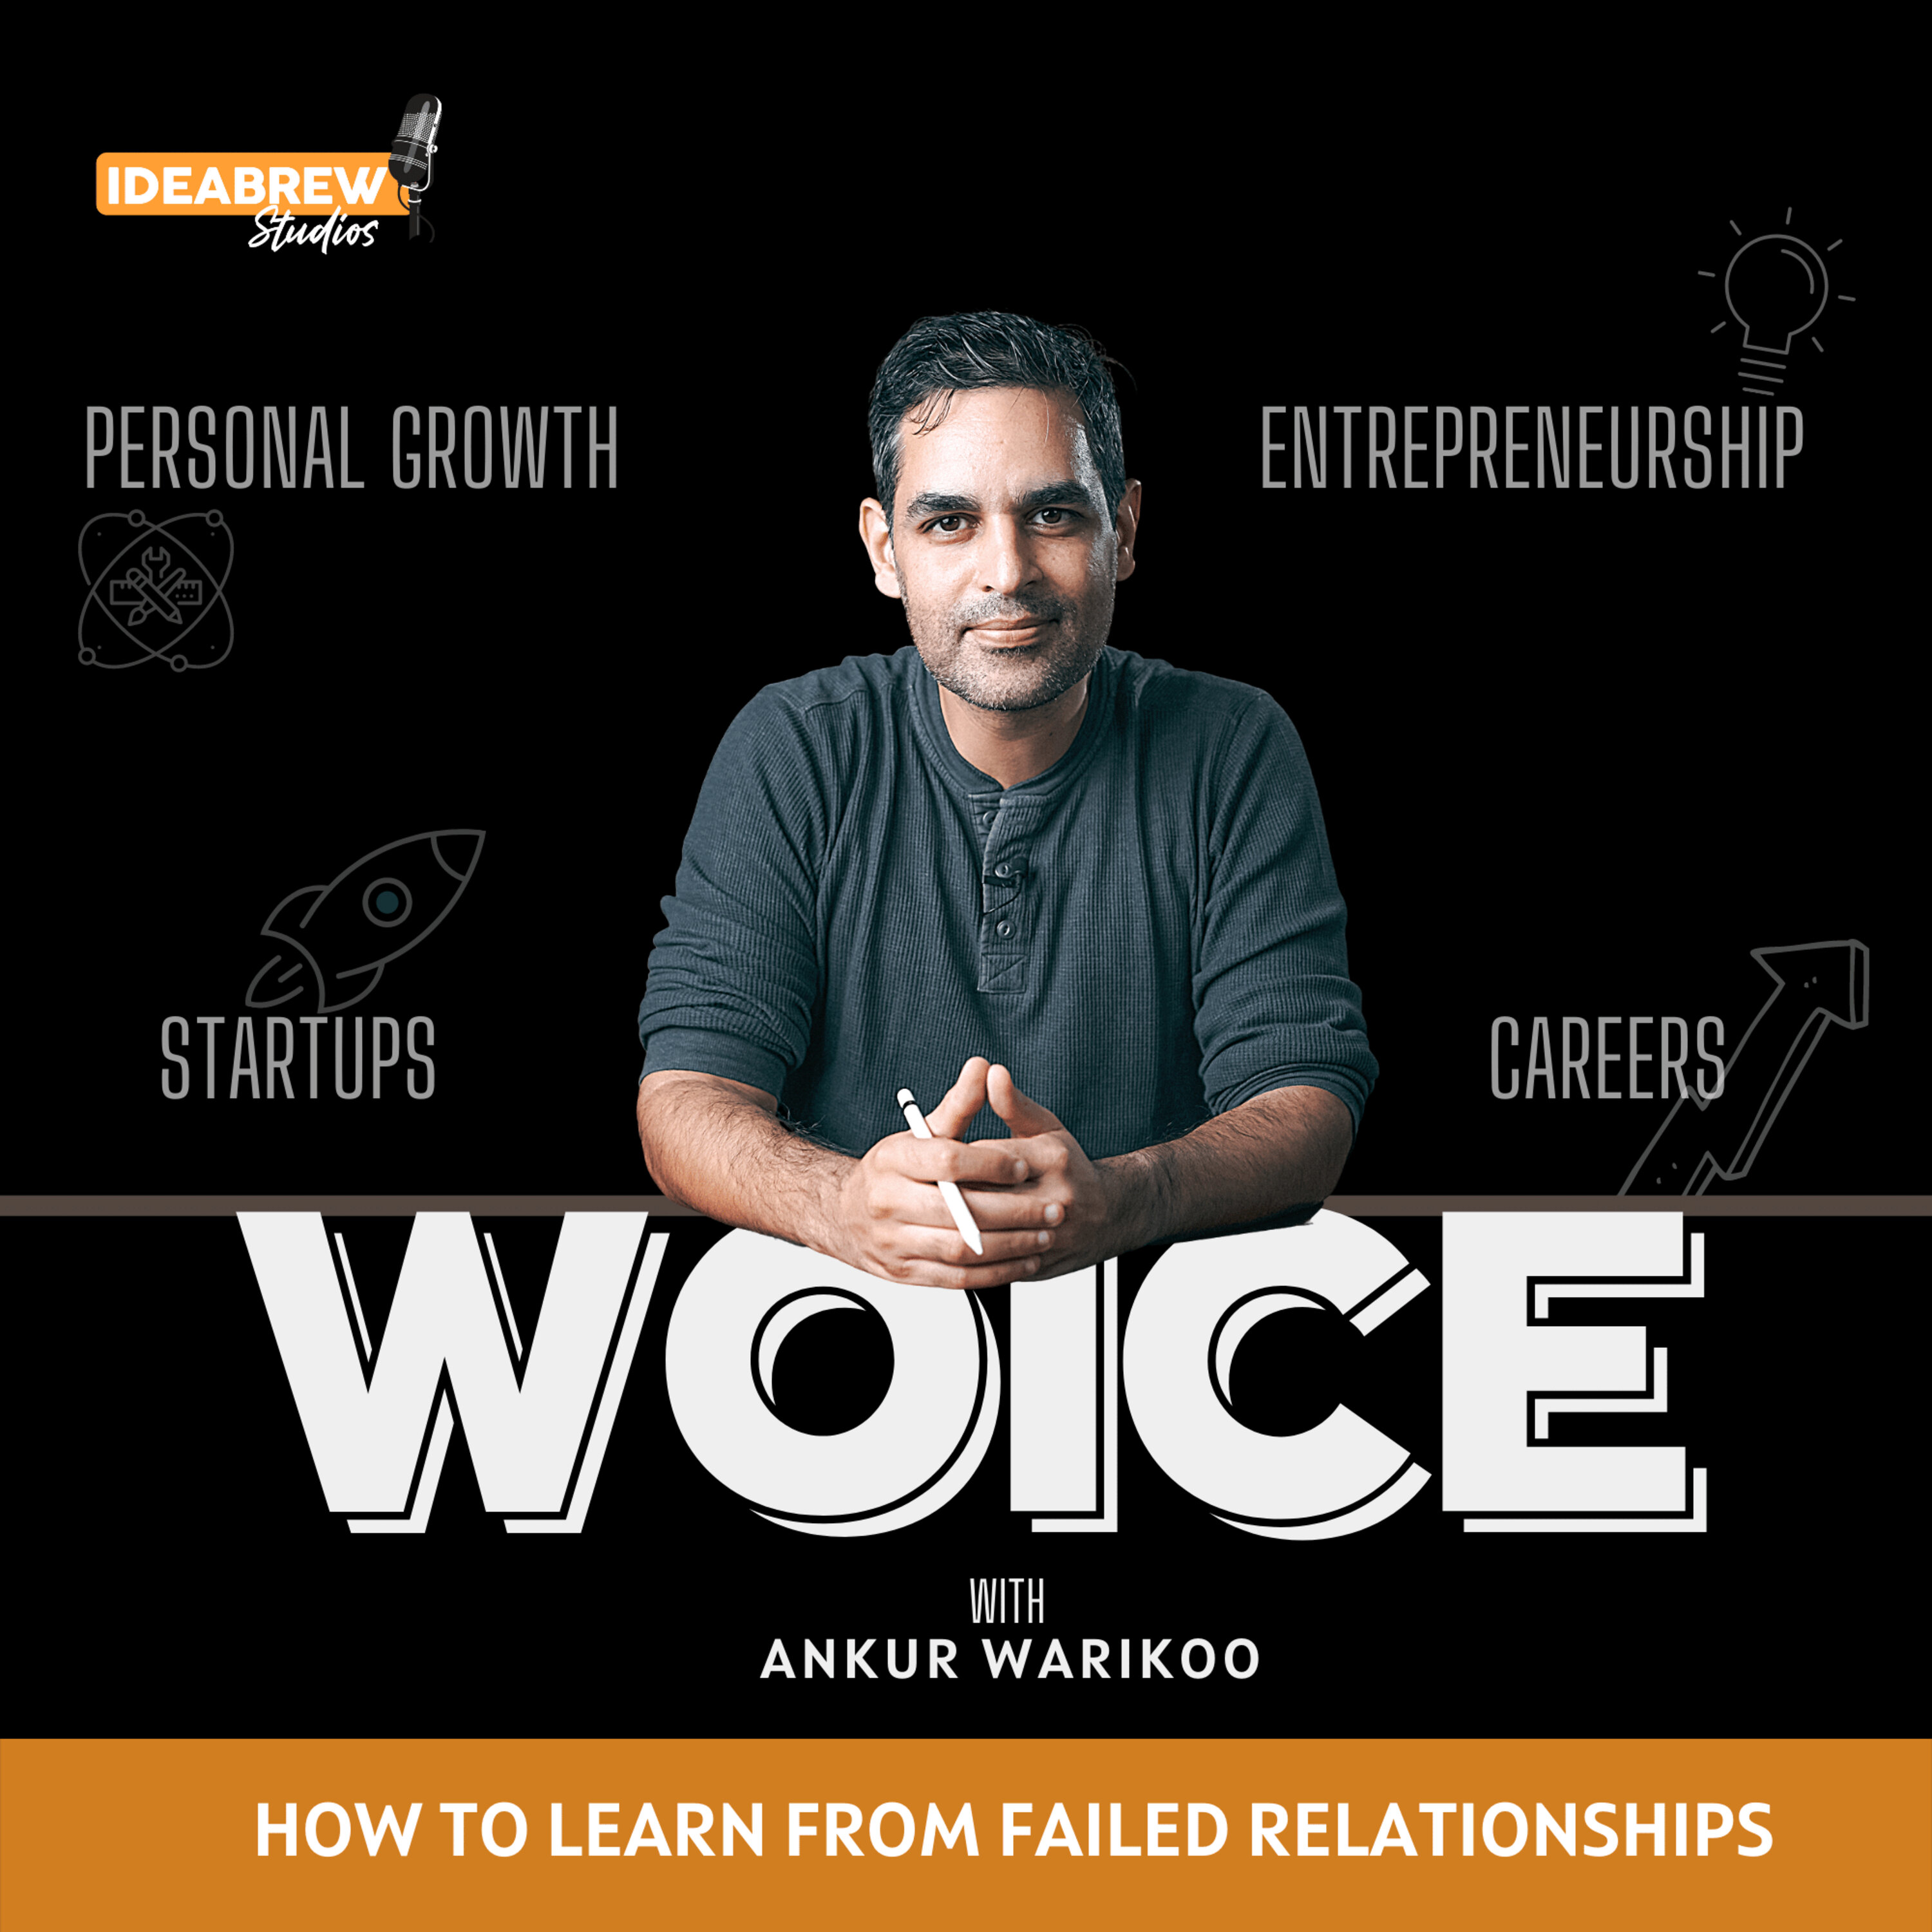 How To Learn From Failed Relationships